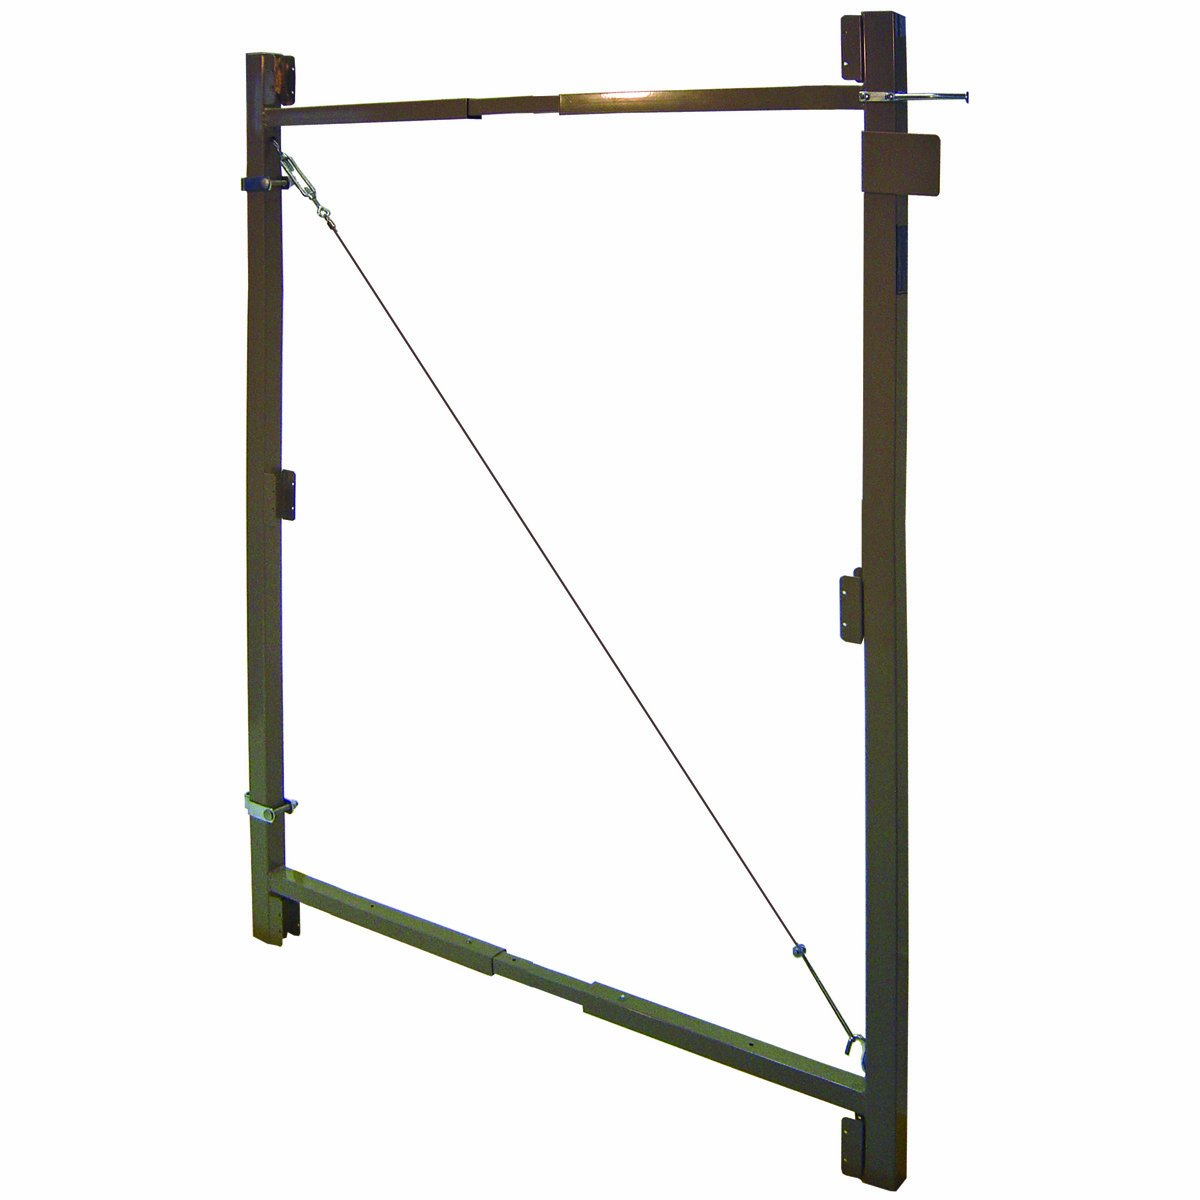 Fence Walk Through Gate Kit - Adjust-A-Gate Steel Frame No Sag Gate Building Kit - This anti-sag gate kit is perfect for repairing existing sagging gates or building new ones. (36''-60'' wide openings up to 7' high fence) by Adjust-A-Gate